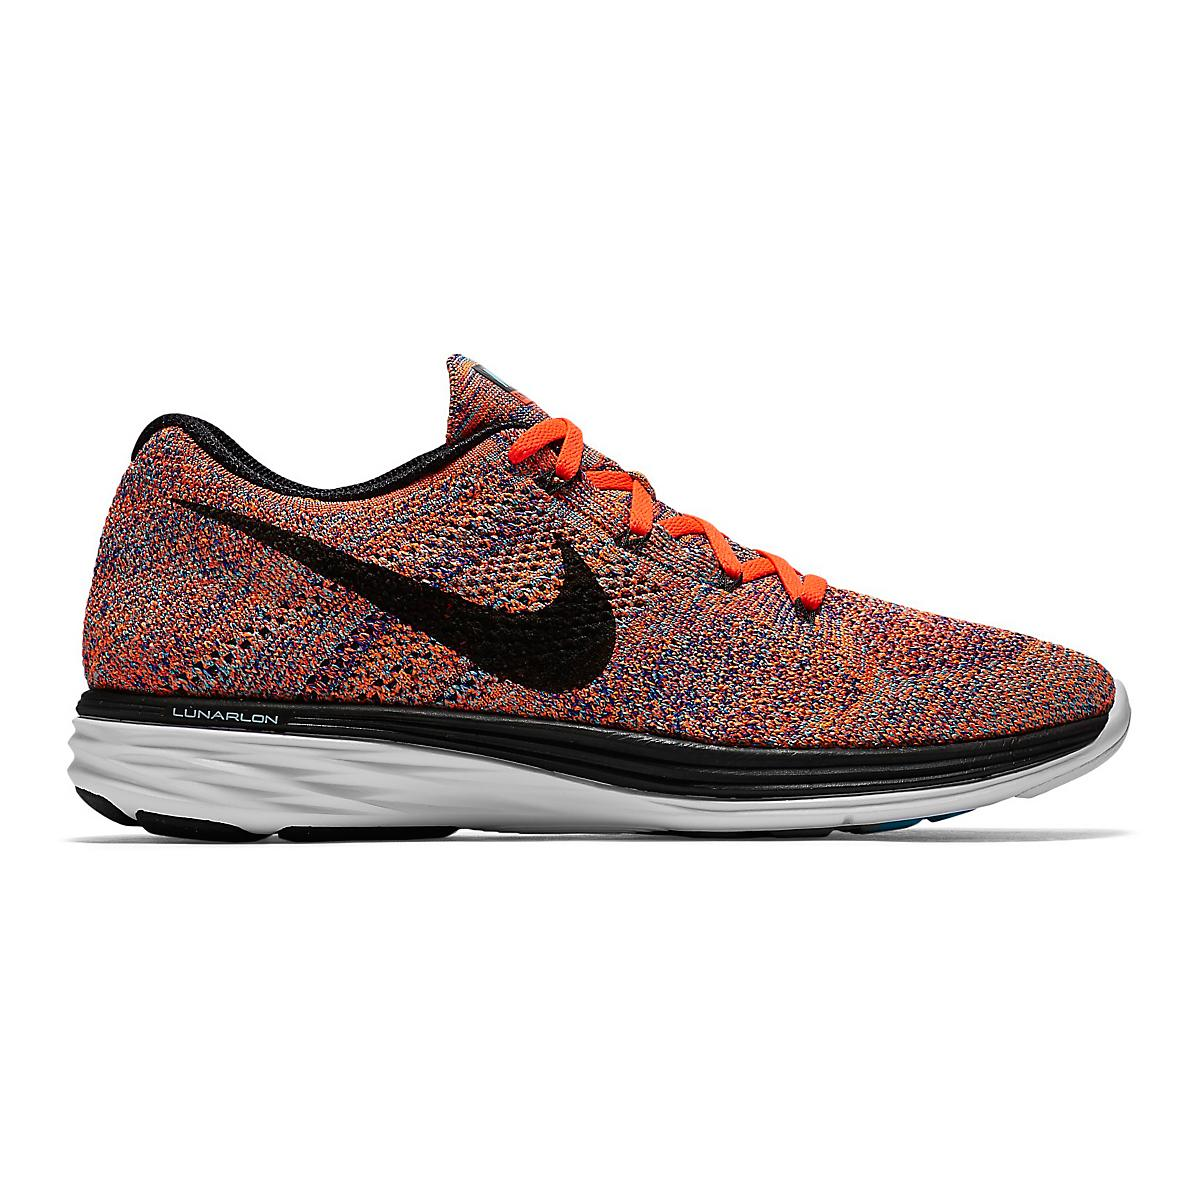 new styles 0a22a 1fb34 ... sweden mens nike flyknit lunar 3 running shoe at road runner sports  56e98 eb2b2